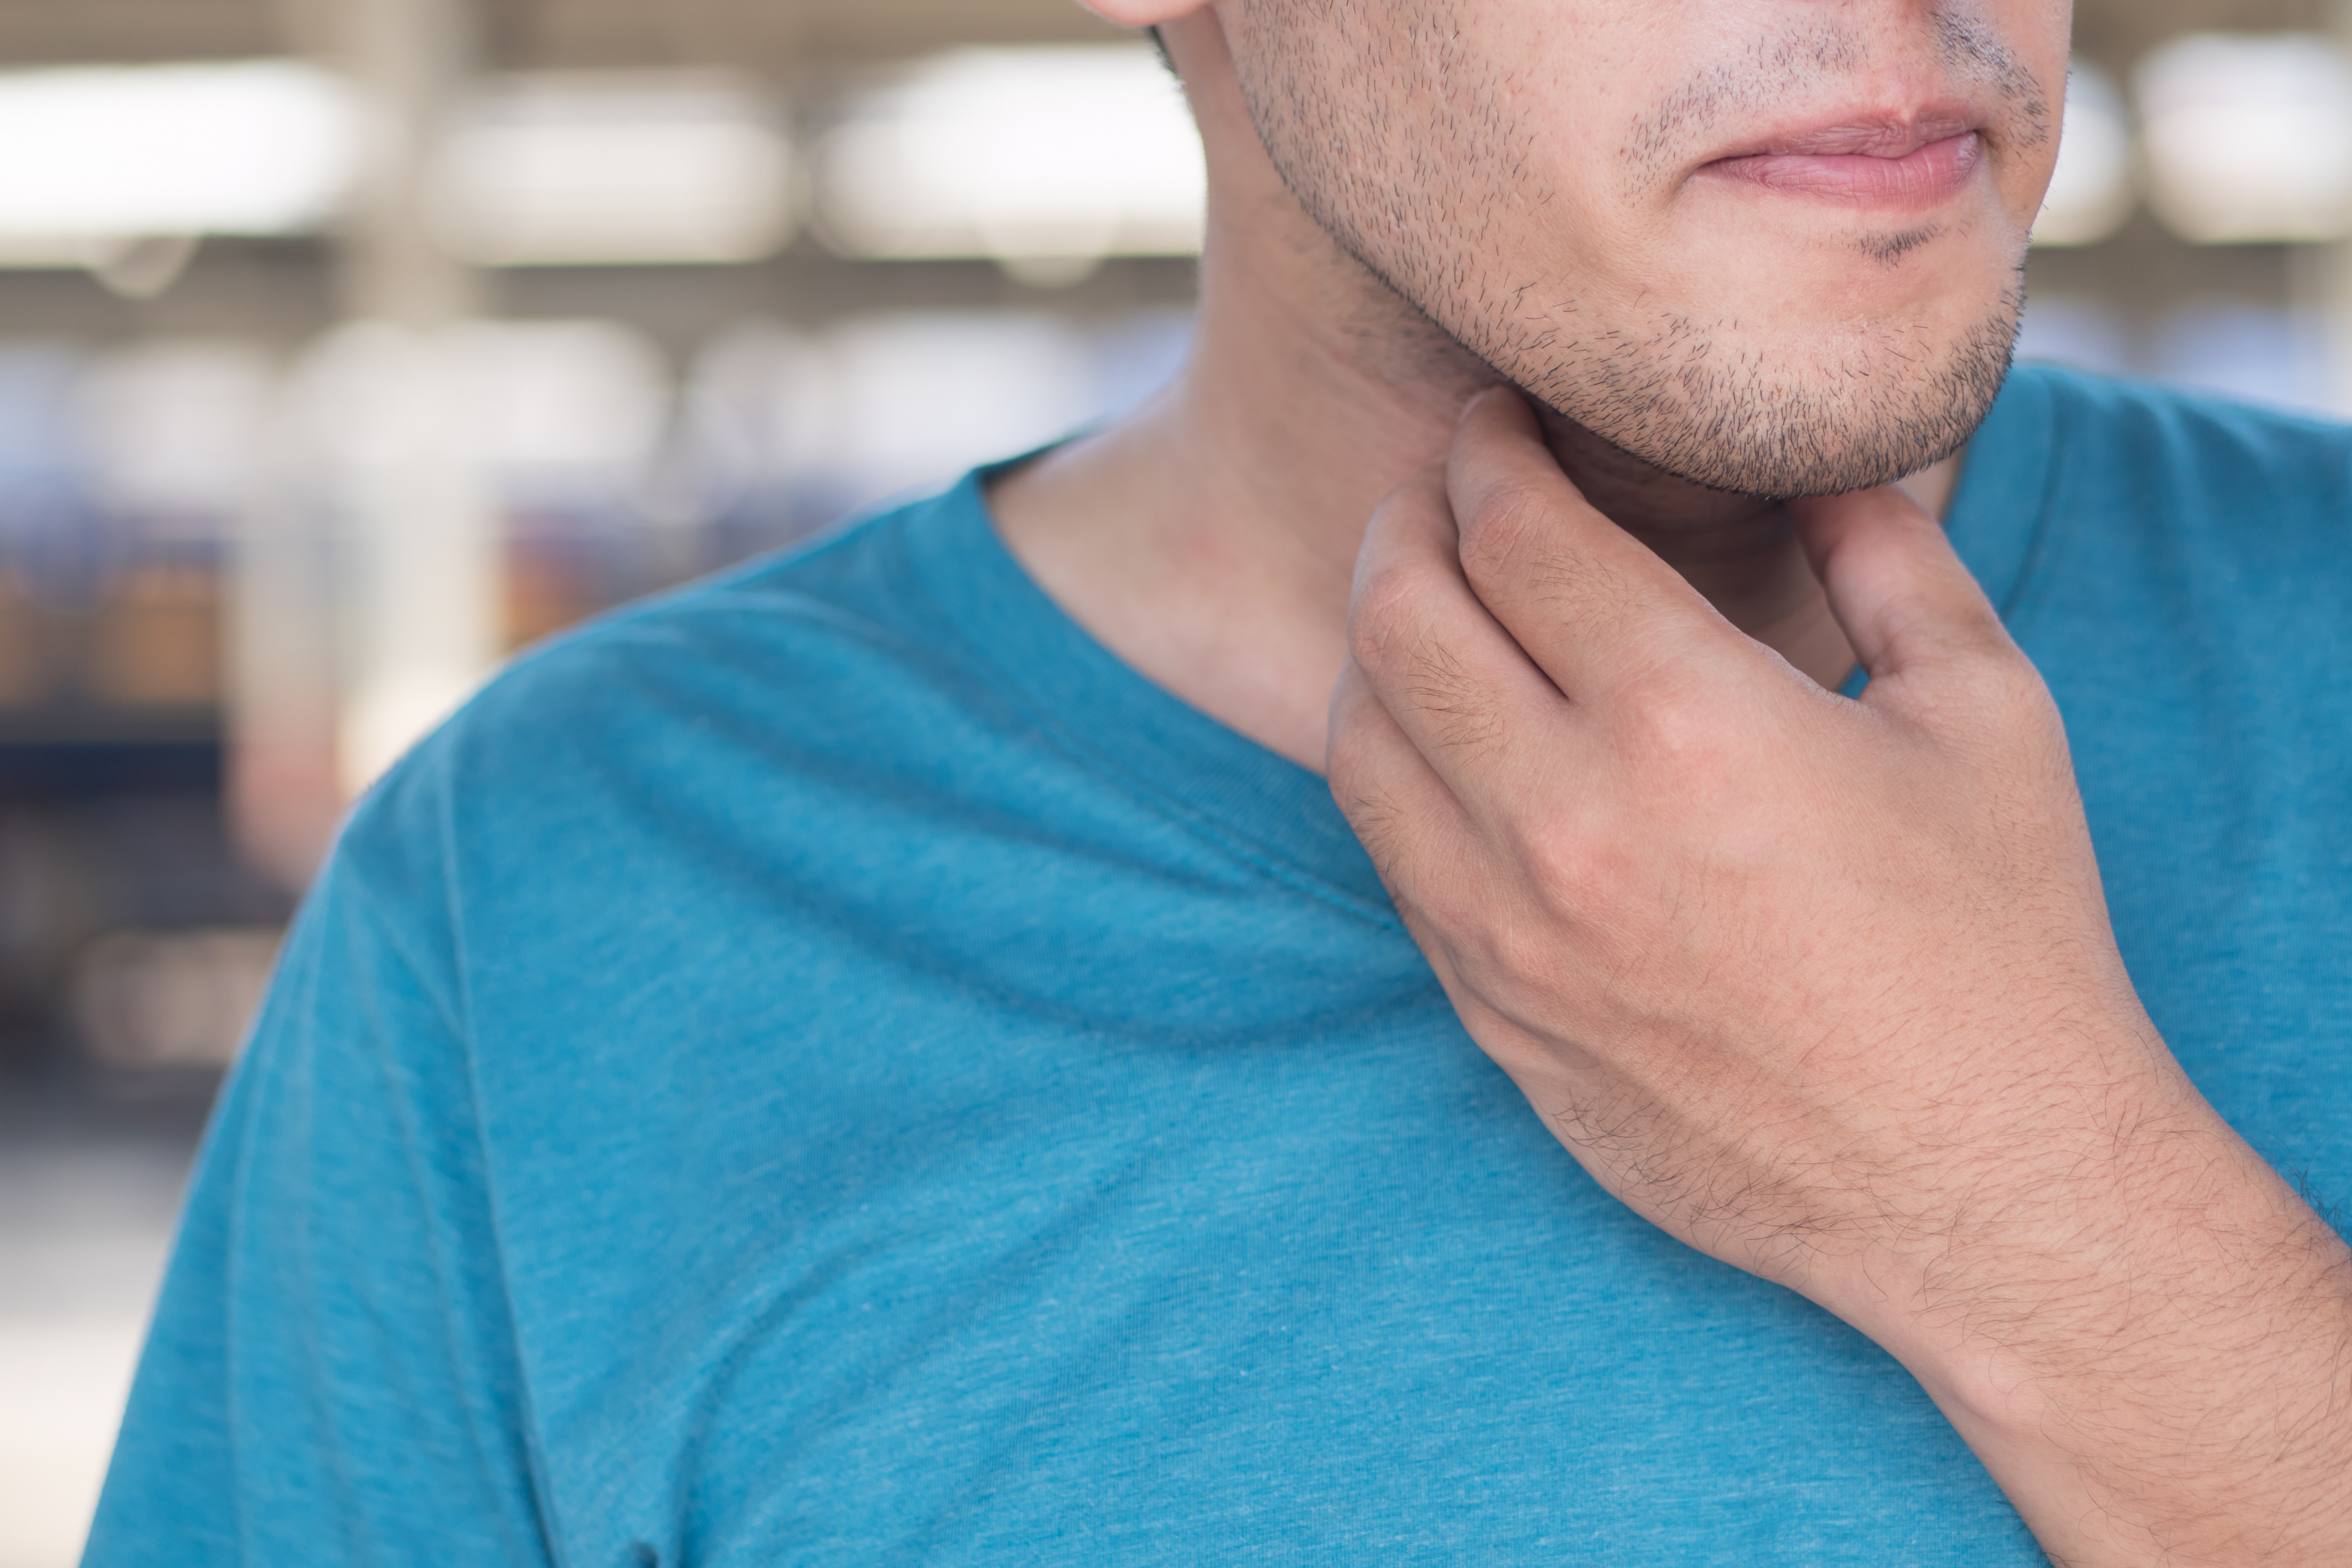 Neck, Throat Soreness: May Be Caused by Exercise